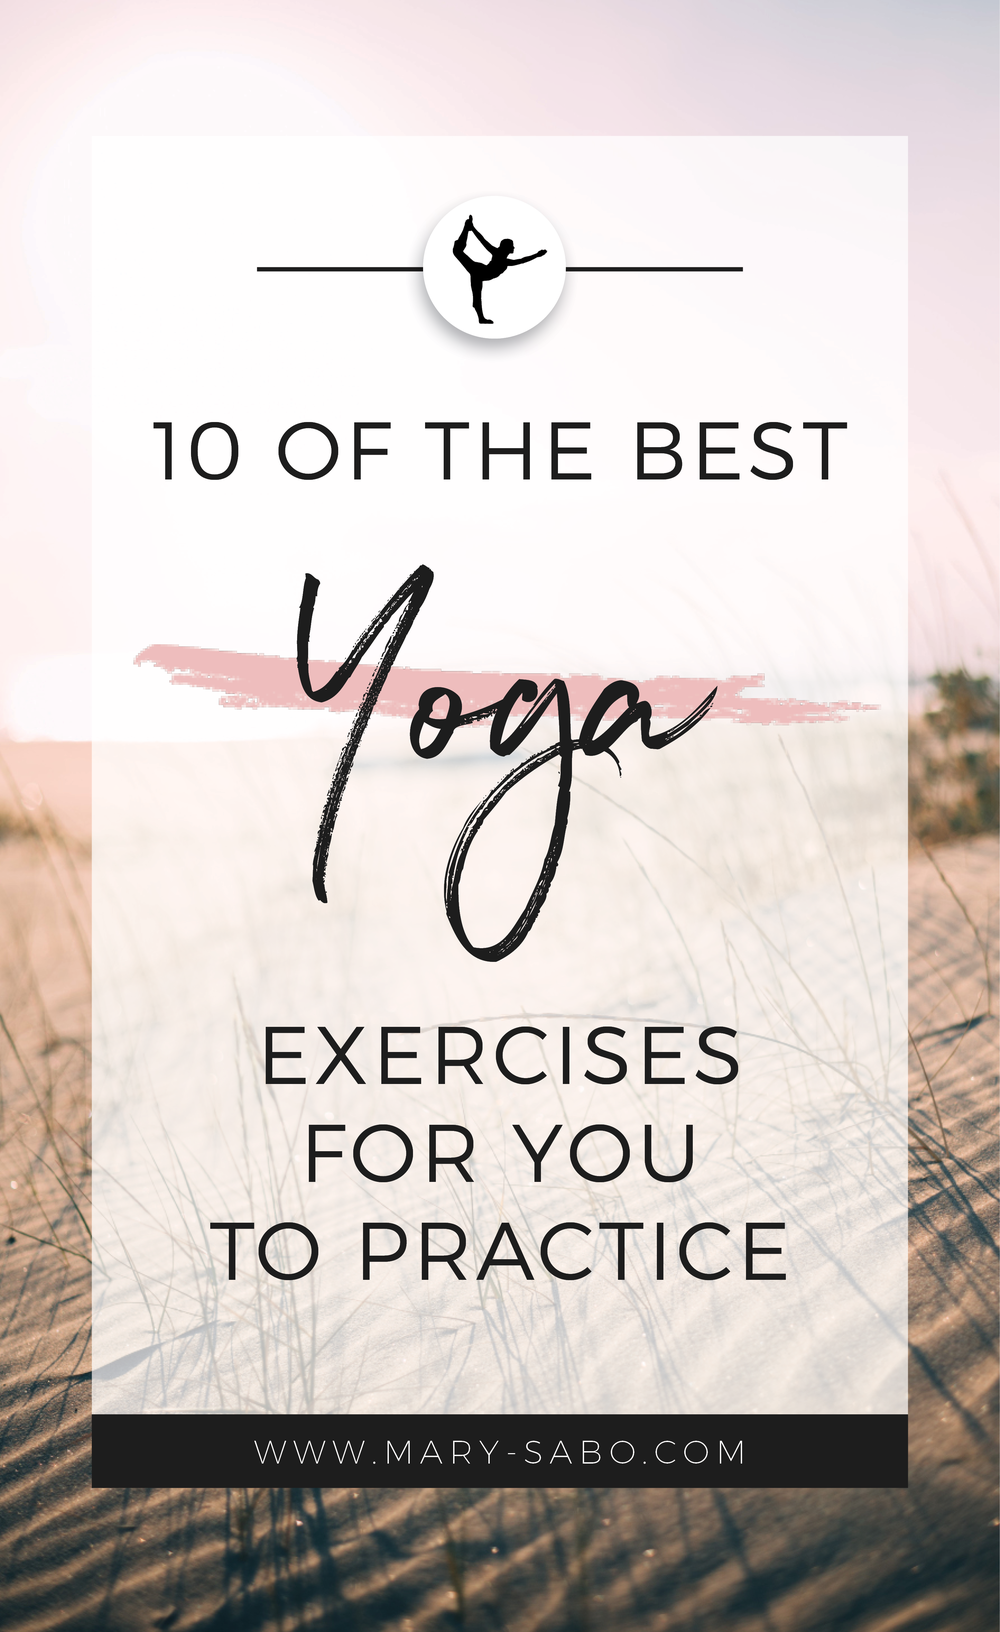 10 of the Best Yoga Exercises for You to Practice : Mary Sabo Y